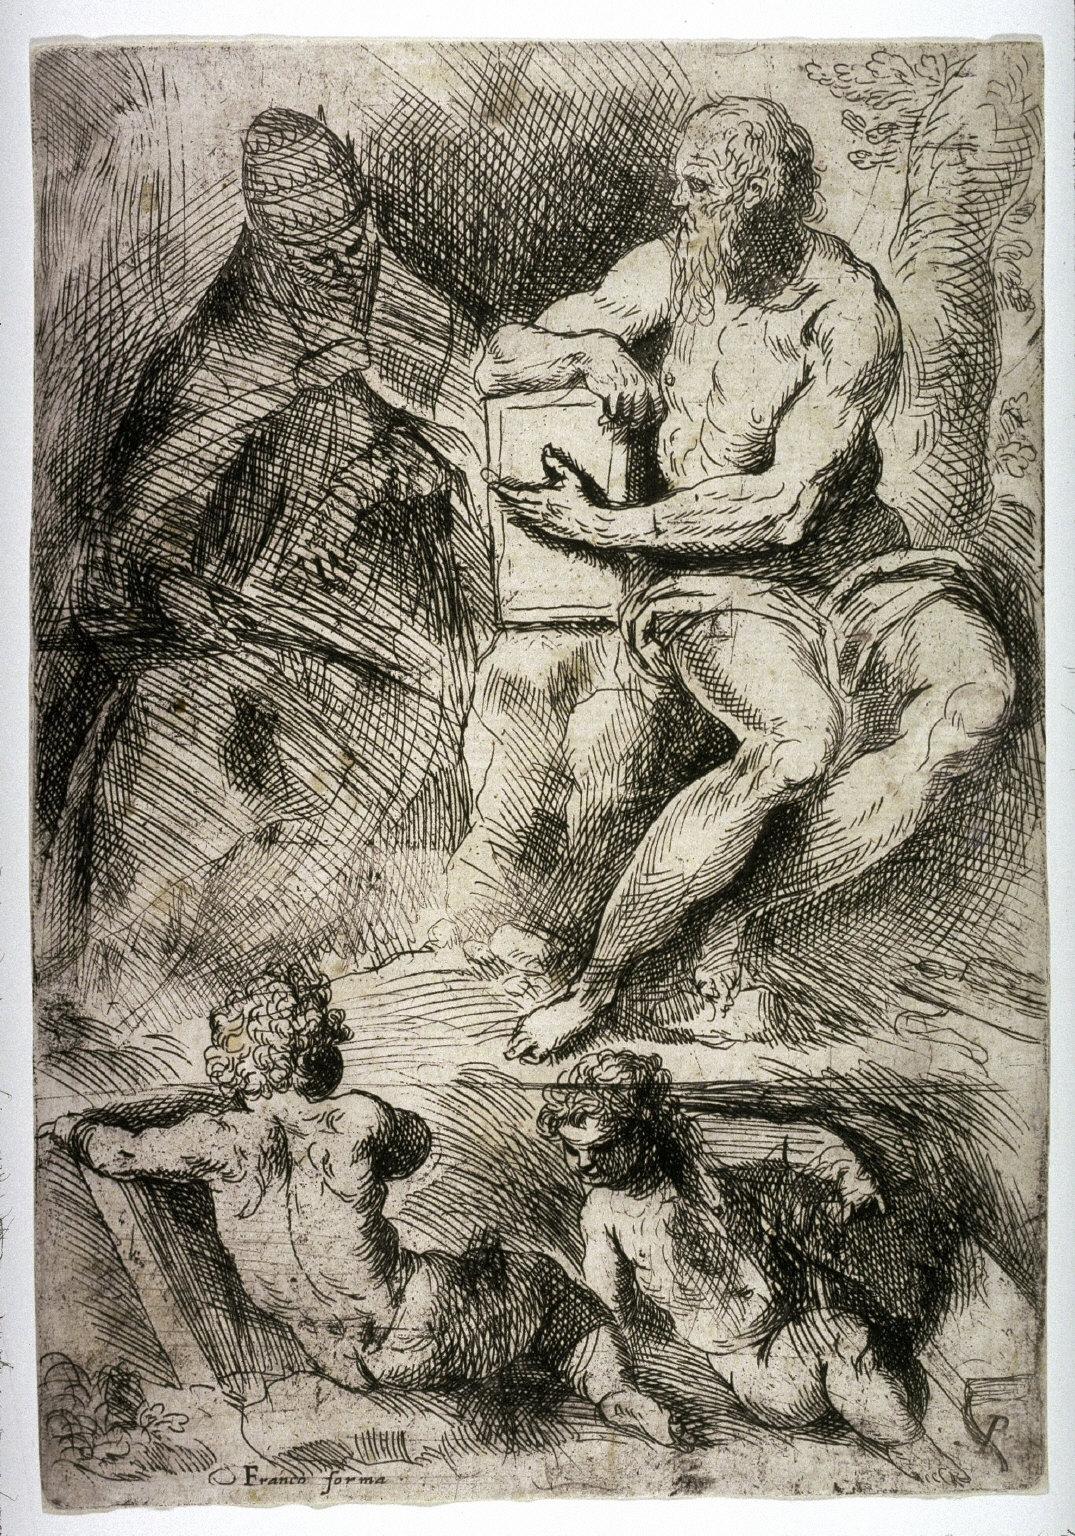 St. Jerome, Pope Damasus, and Two Putti, from the drawing manual, De excellentia et nobilitate delineationis libri duo Principles of Drawing)